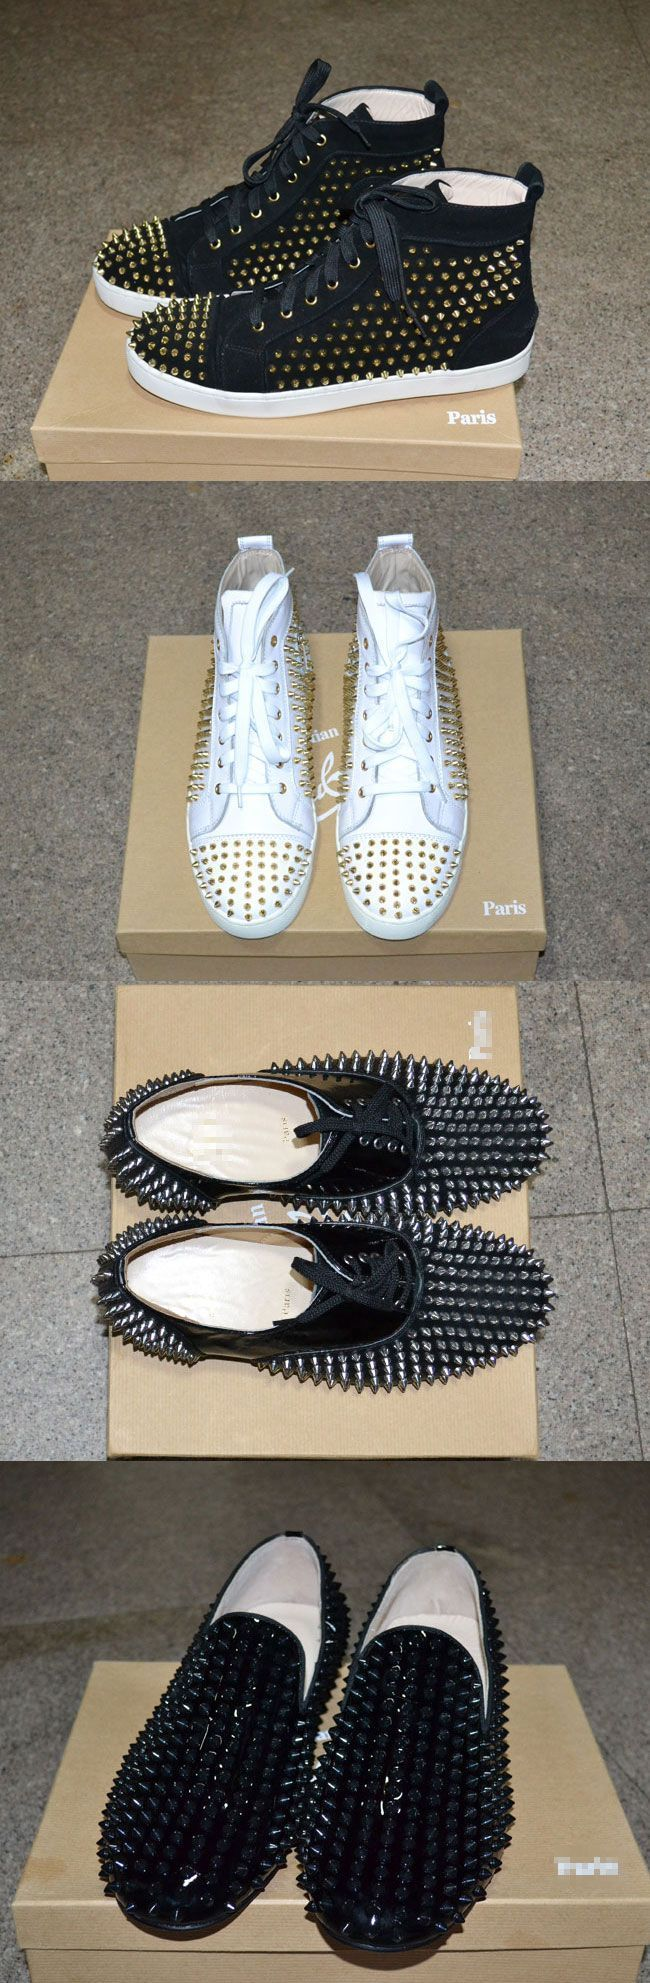 christian louboutin mens spikes shoes #christianlouboutinquotes #christianlouboutinoutfits